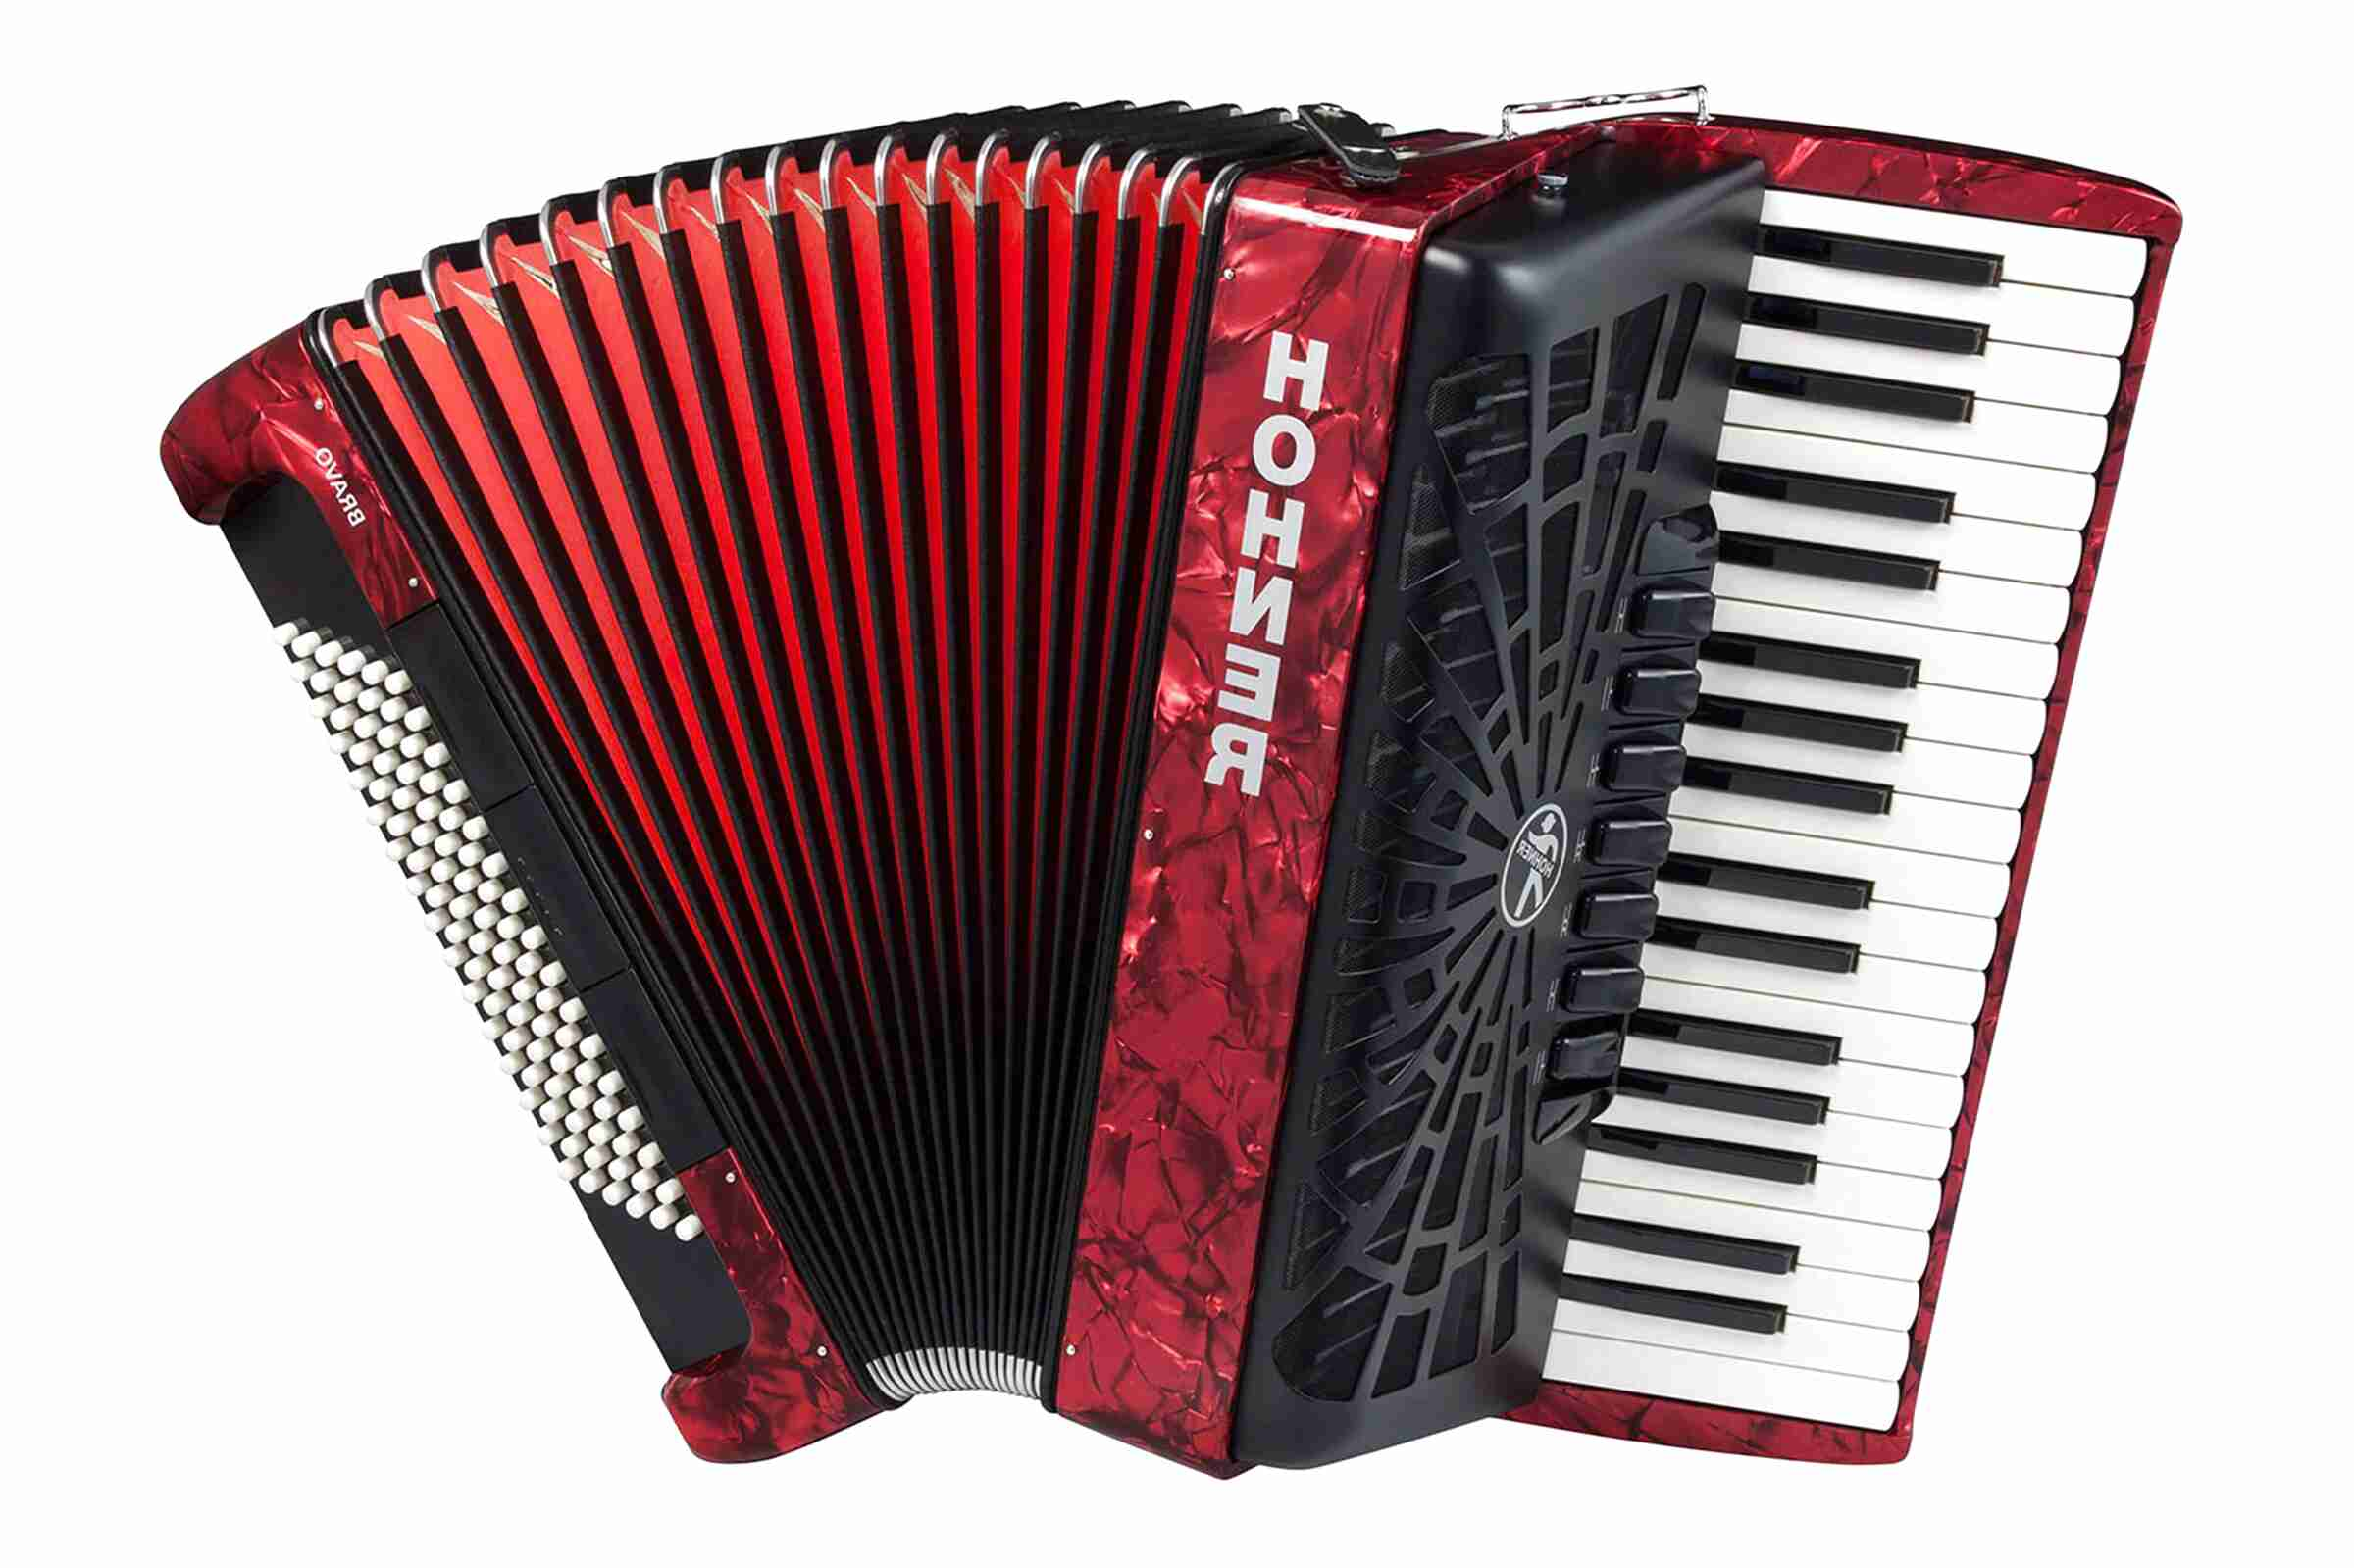 hohner piano accordion for sale